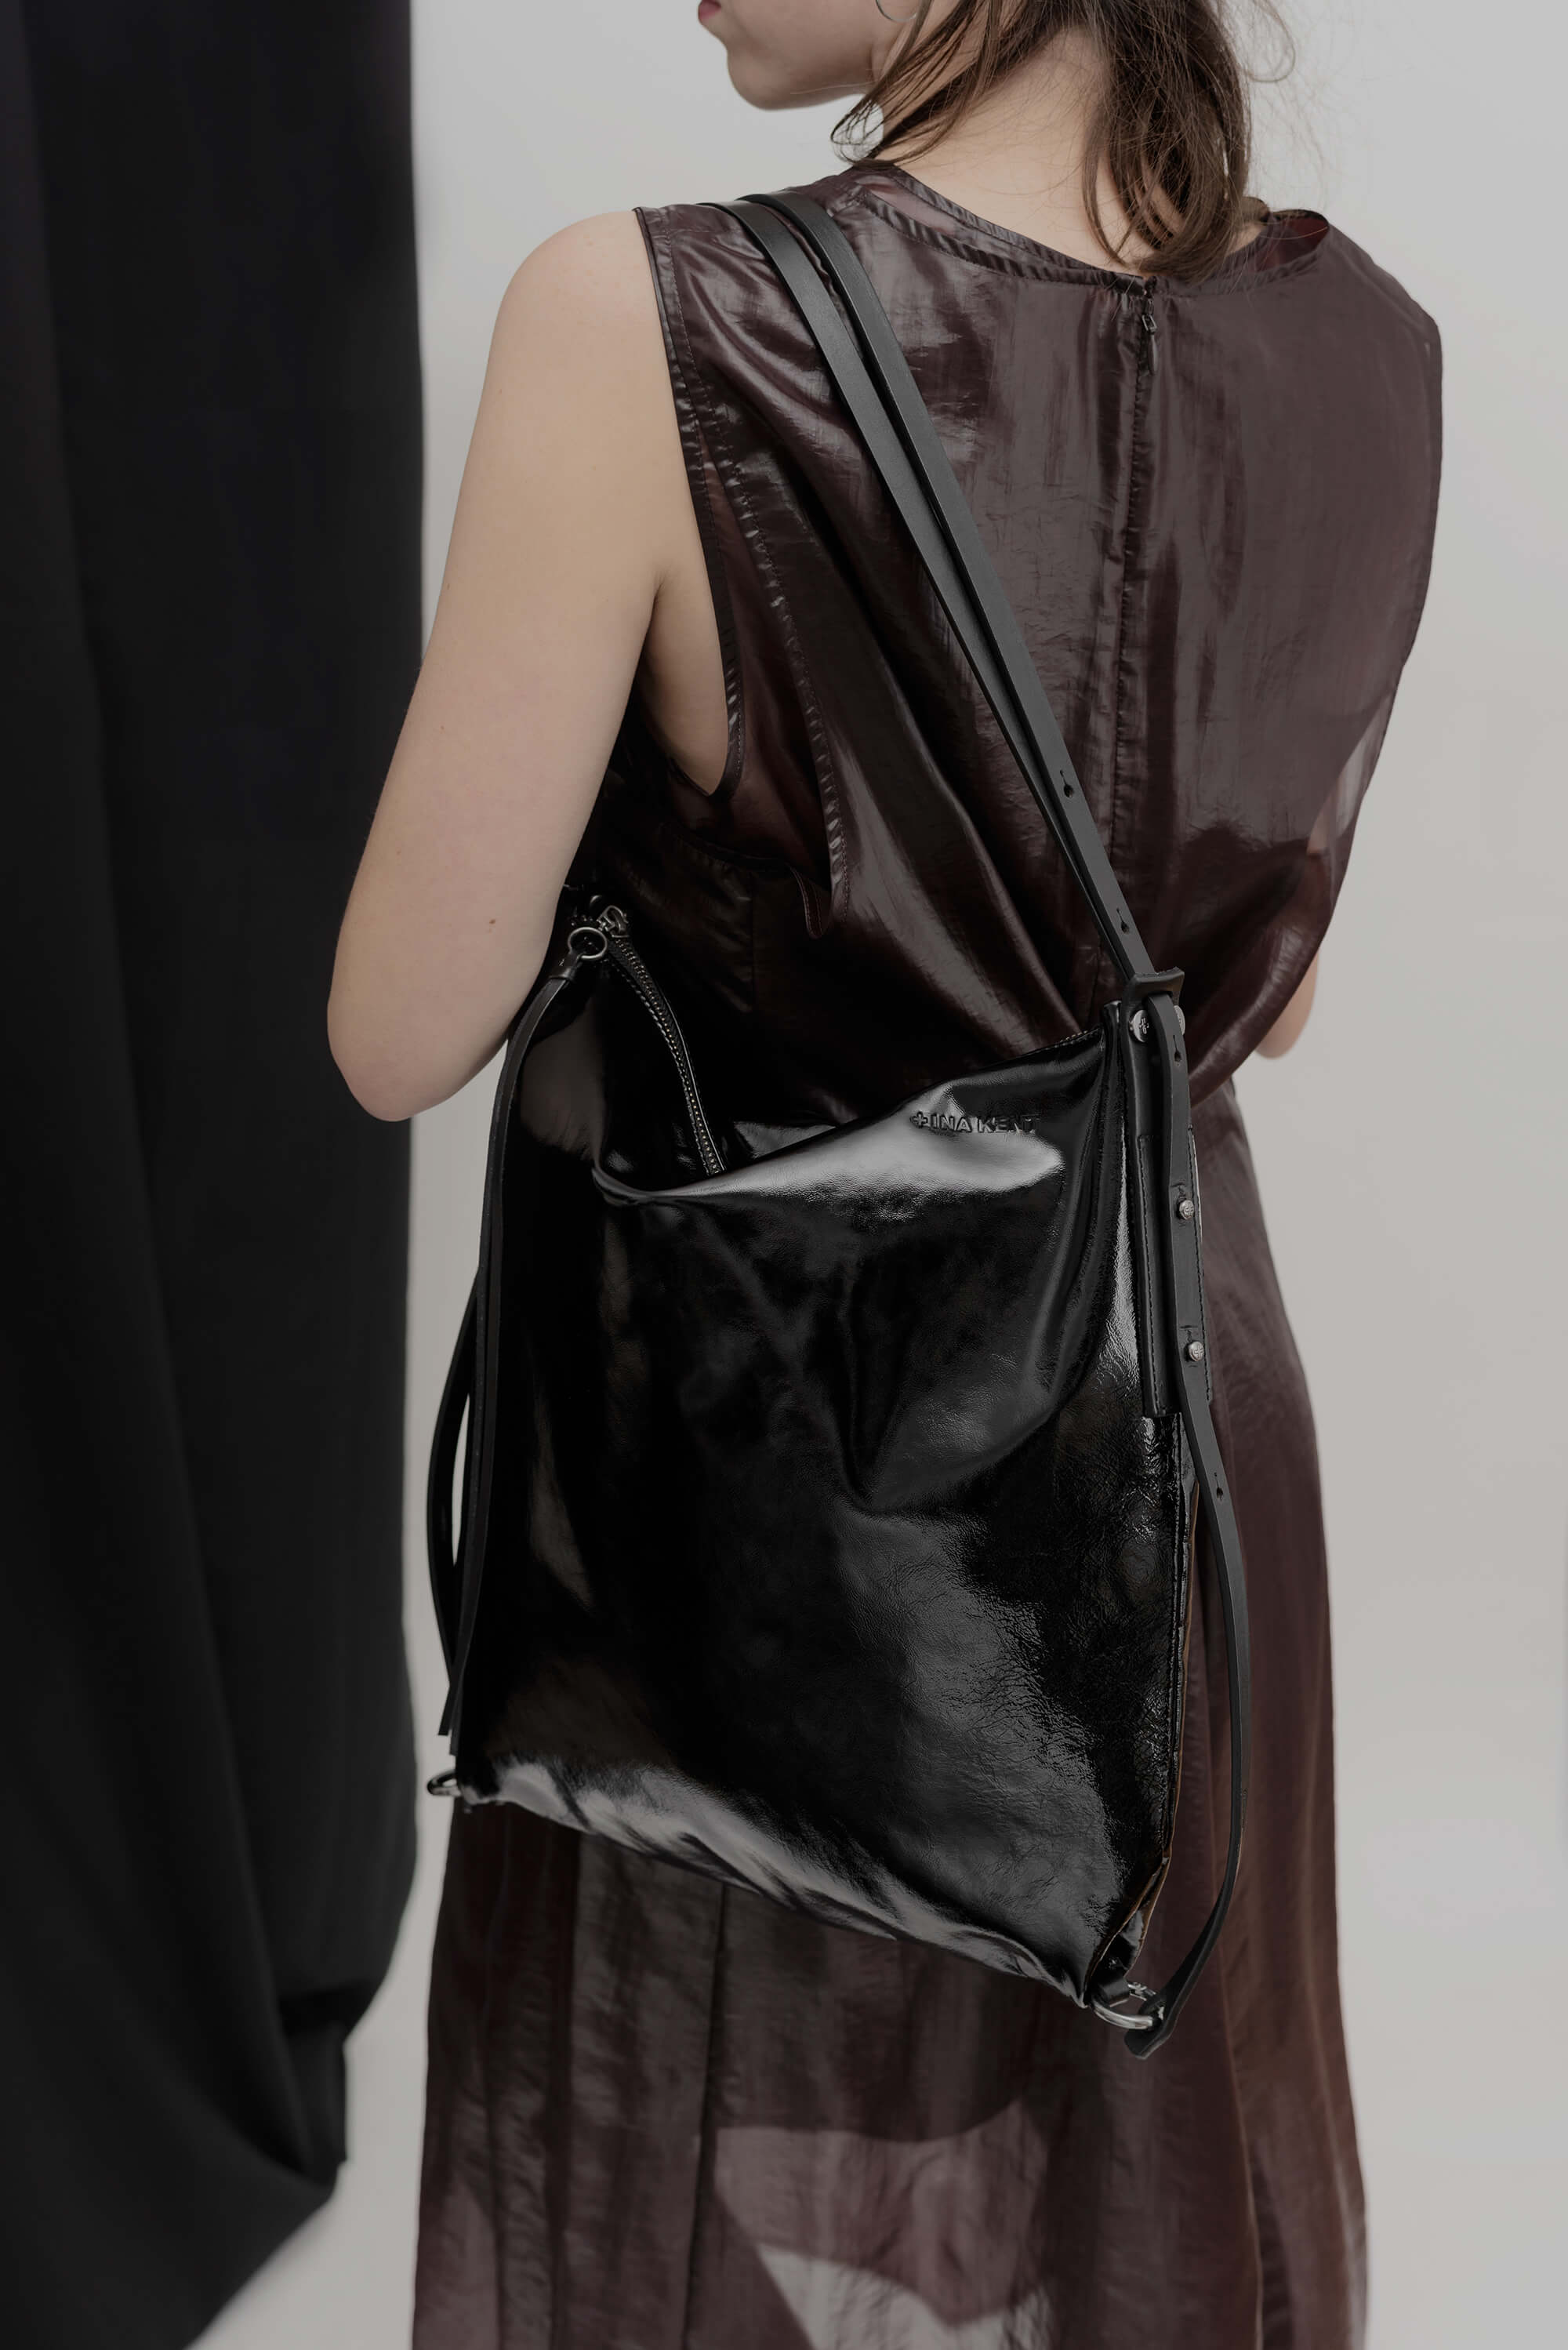 Ina Kent Patent Black Leather Handbag/Backpack - MoMuse Jewellery